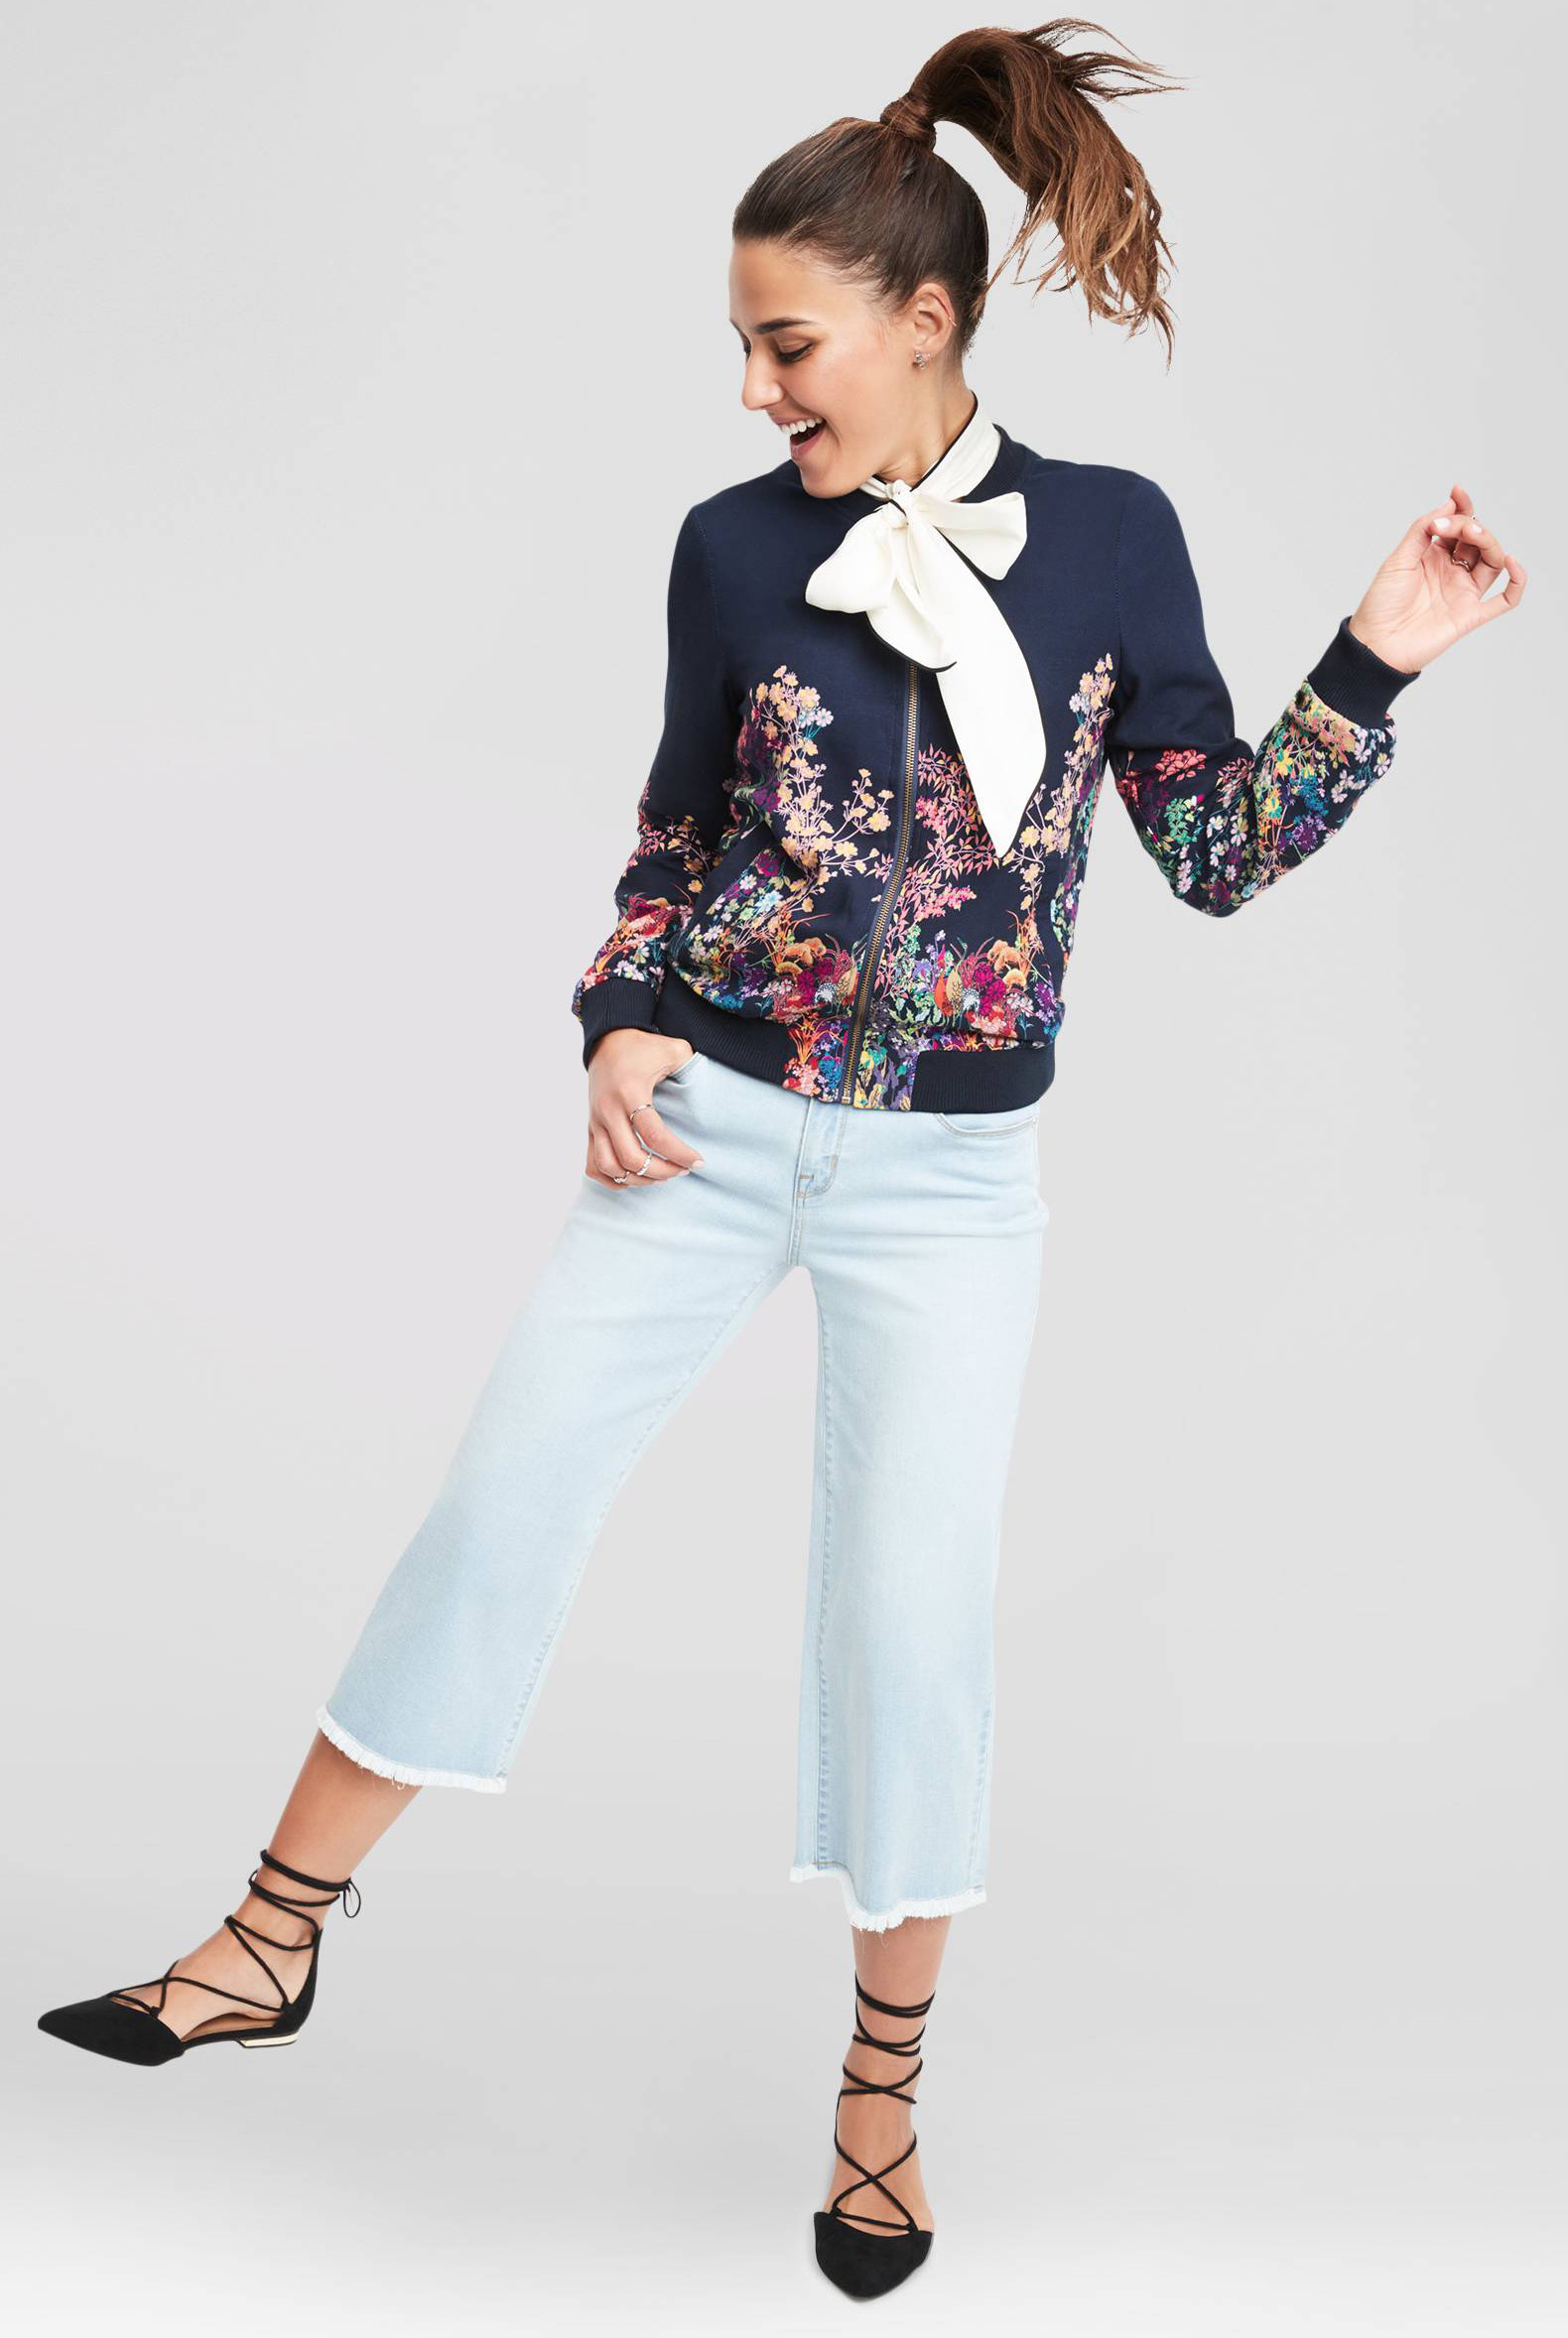 blue-light-crop-jeans-white-top-blouse-bow-black-shoe-flats-pony-floral-print-blue-navy-jacket-bomber-howtowear-fashion-style-outfit-spring-summer-brun-lunch.jpg